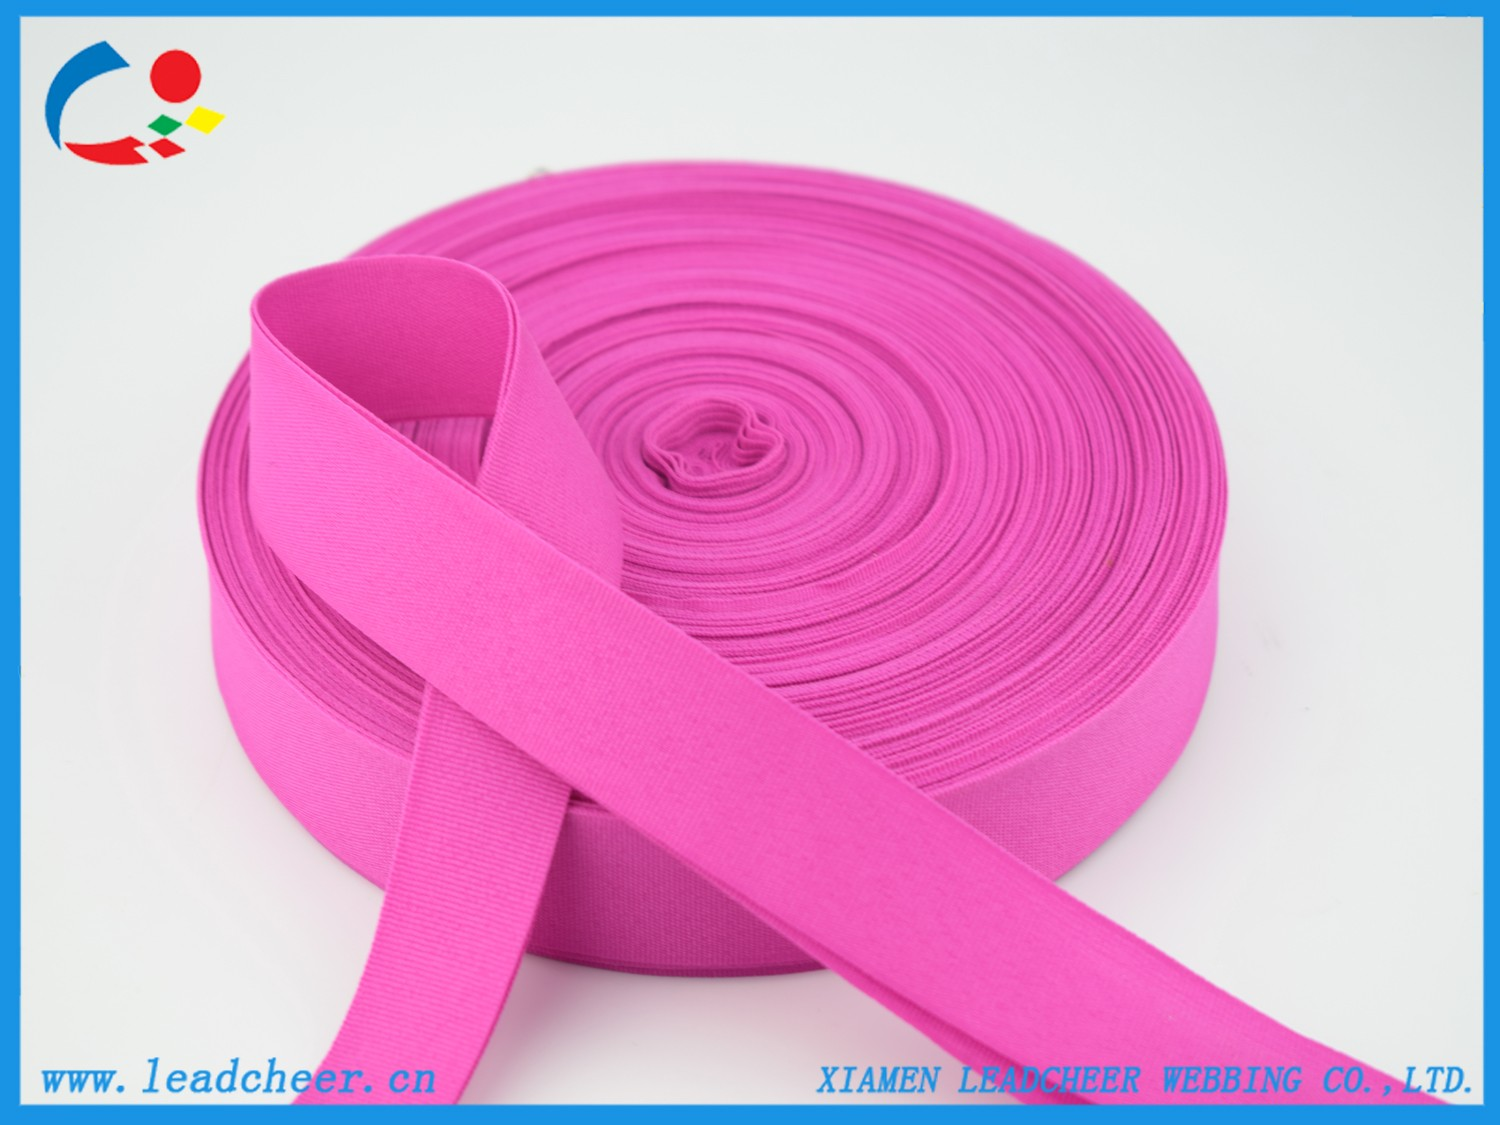 High quality Binding Webbing For Shoes Quotes,China Binding Webbing For Shoes Factory,Binding Webbing For Shoes Purchasing